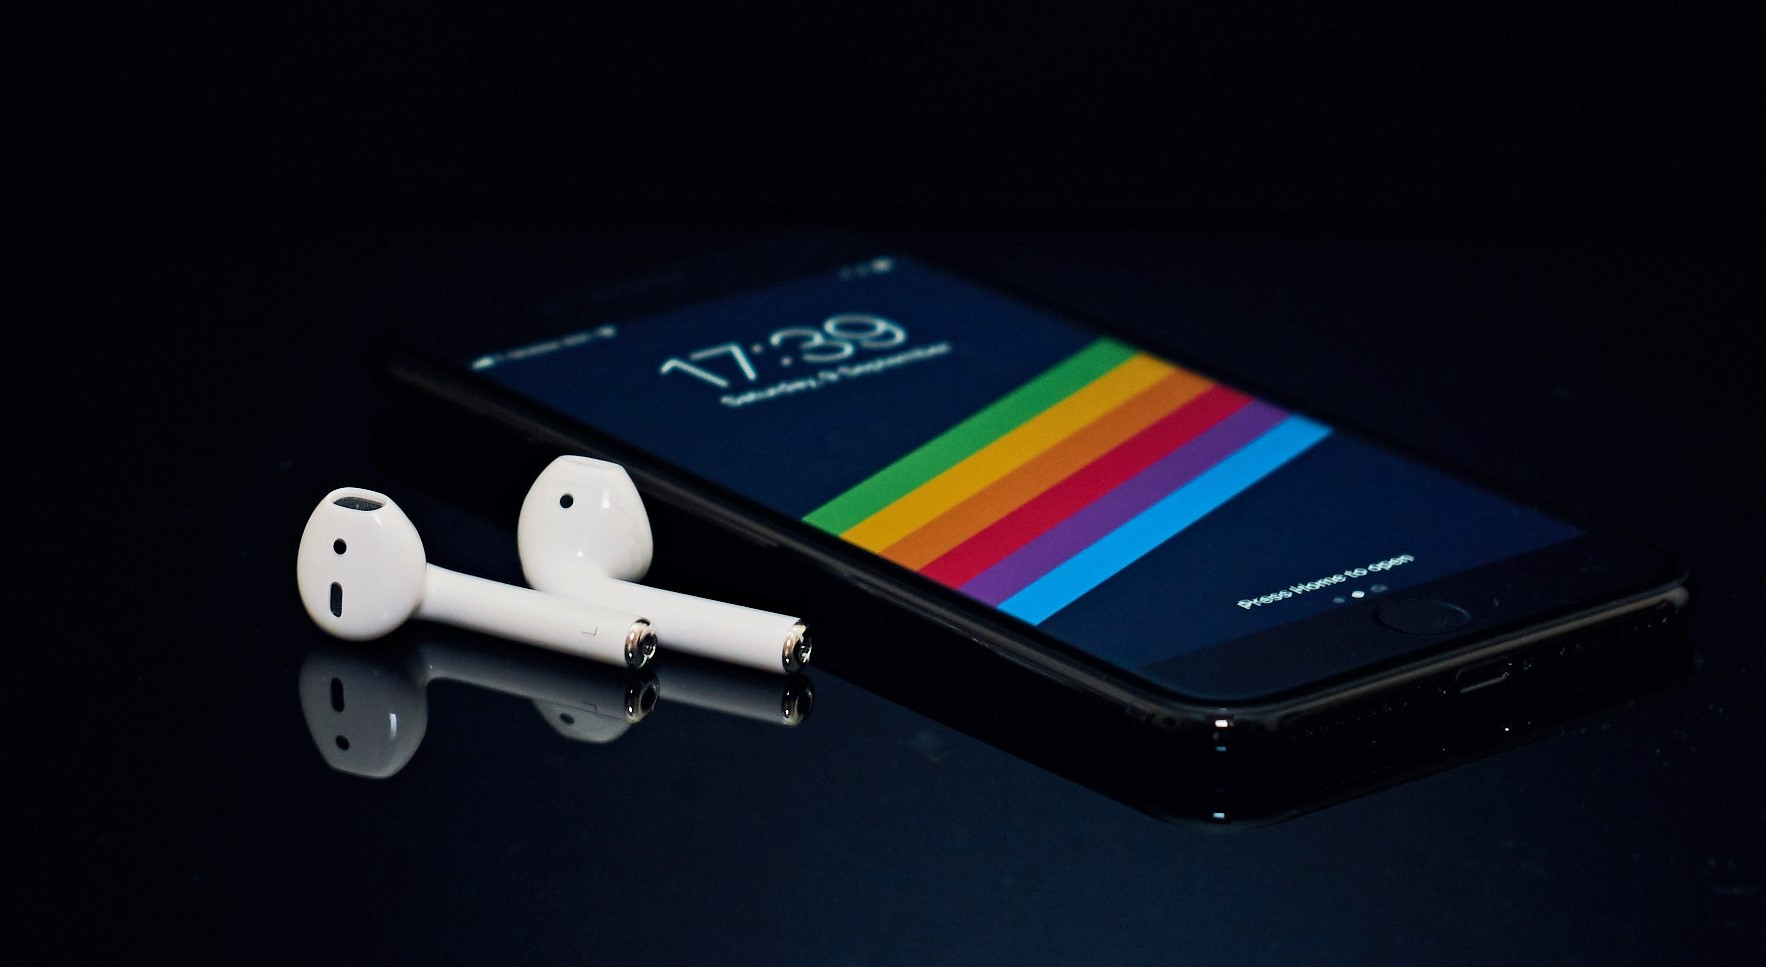 Auriculares Bluetooth Apple AirPods 1 junto a un iPhone